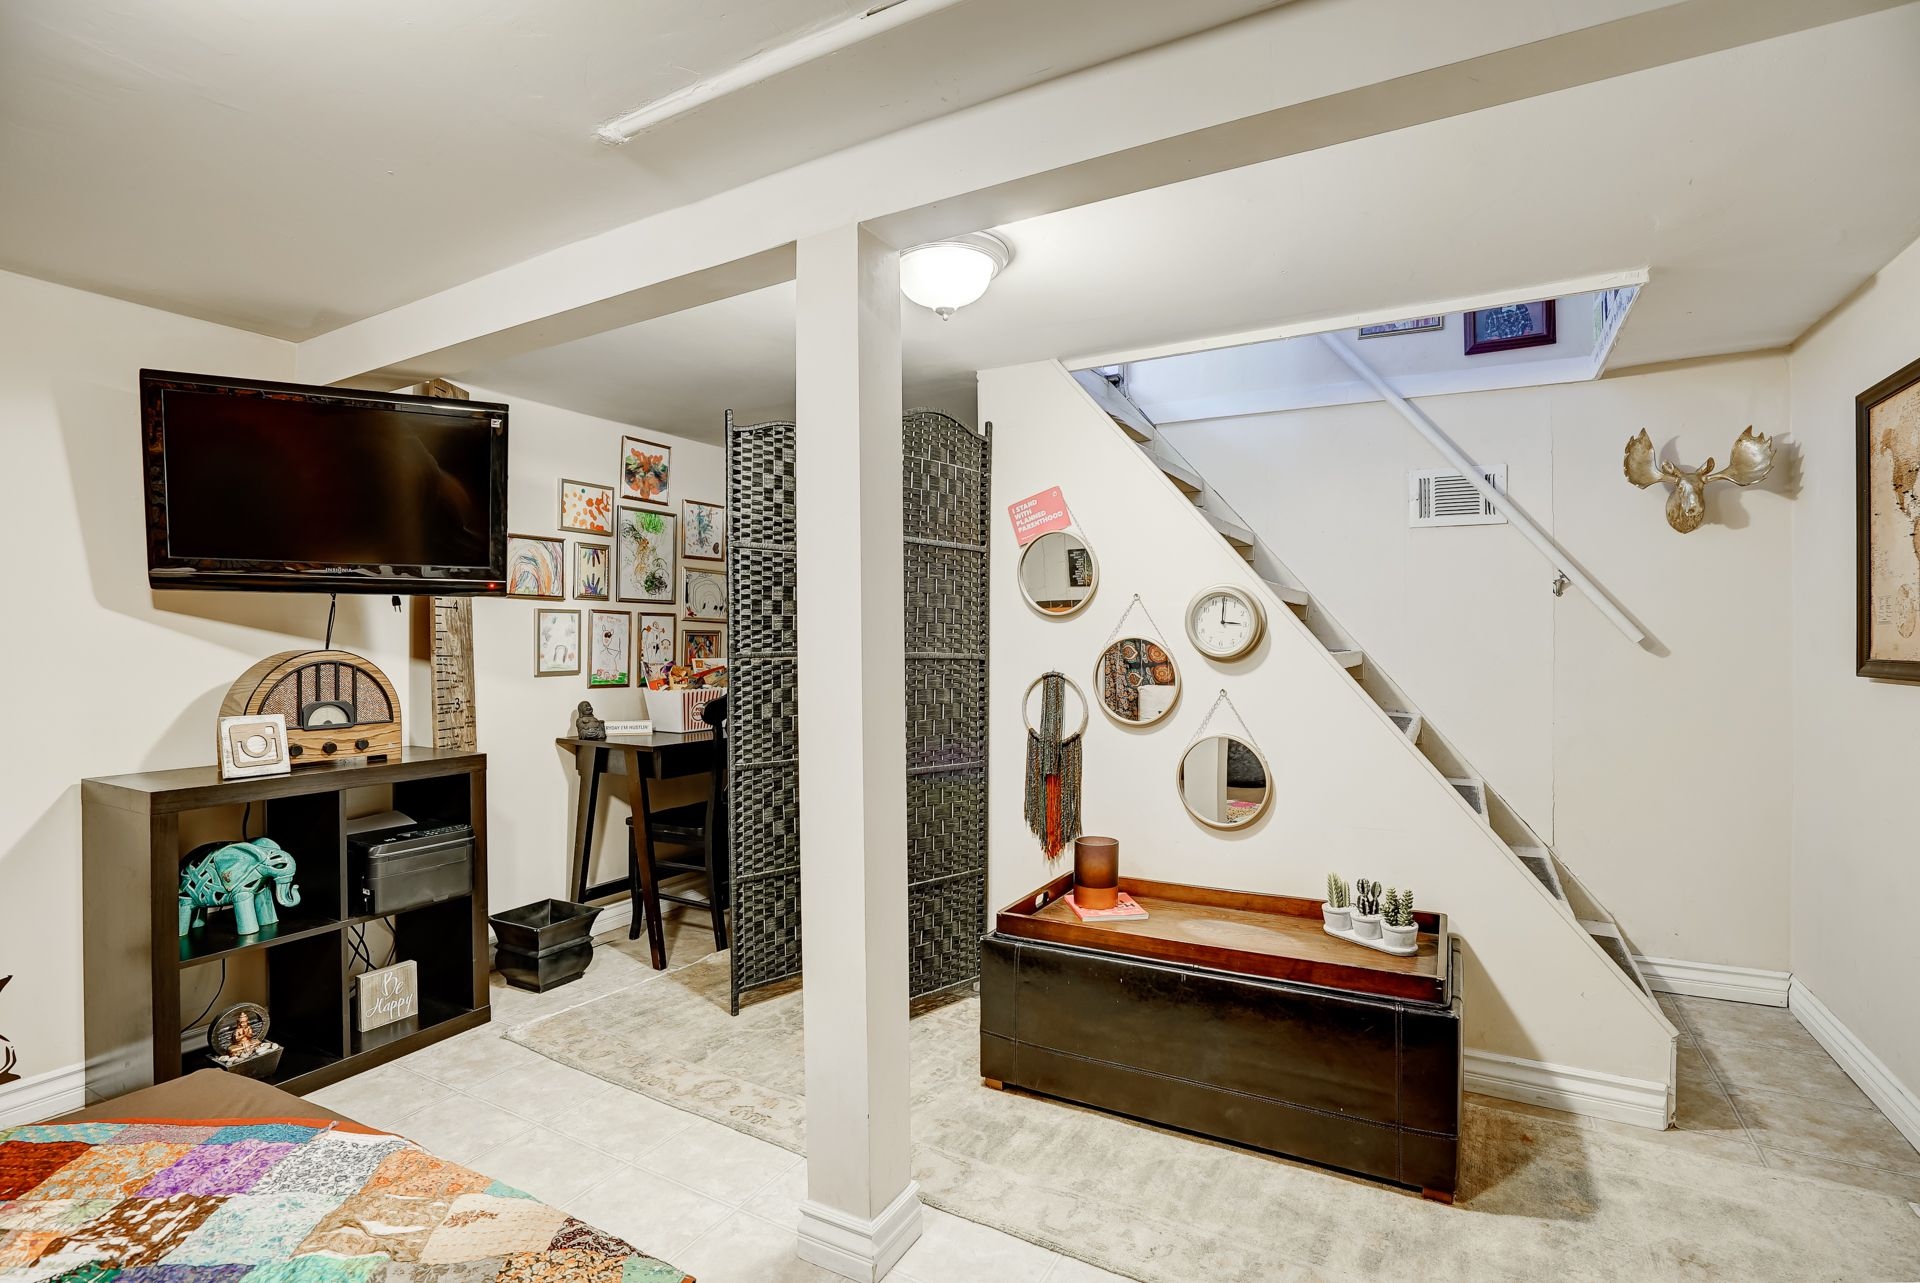 Alternate view of finished basement. Behind the wicker panel is a doorway to another large room for additional storage.